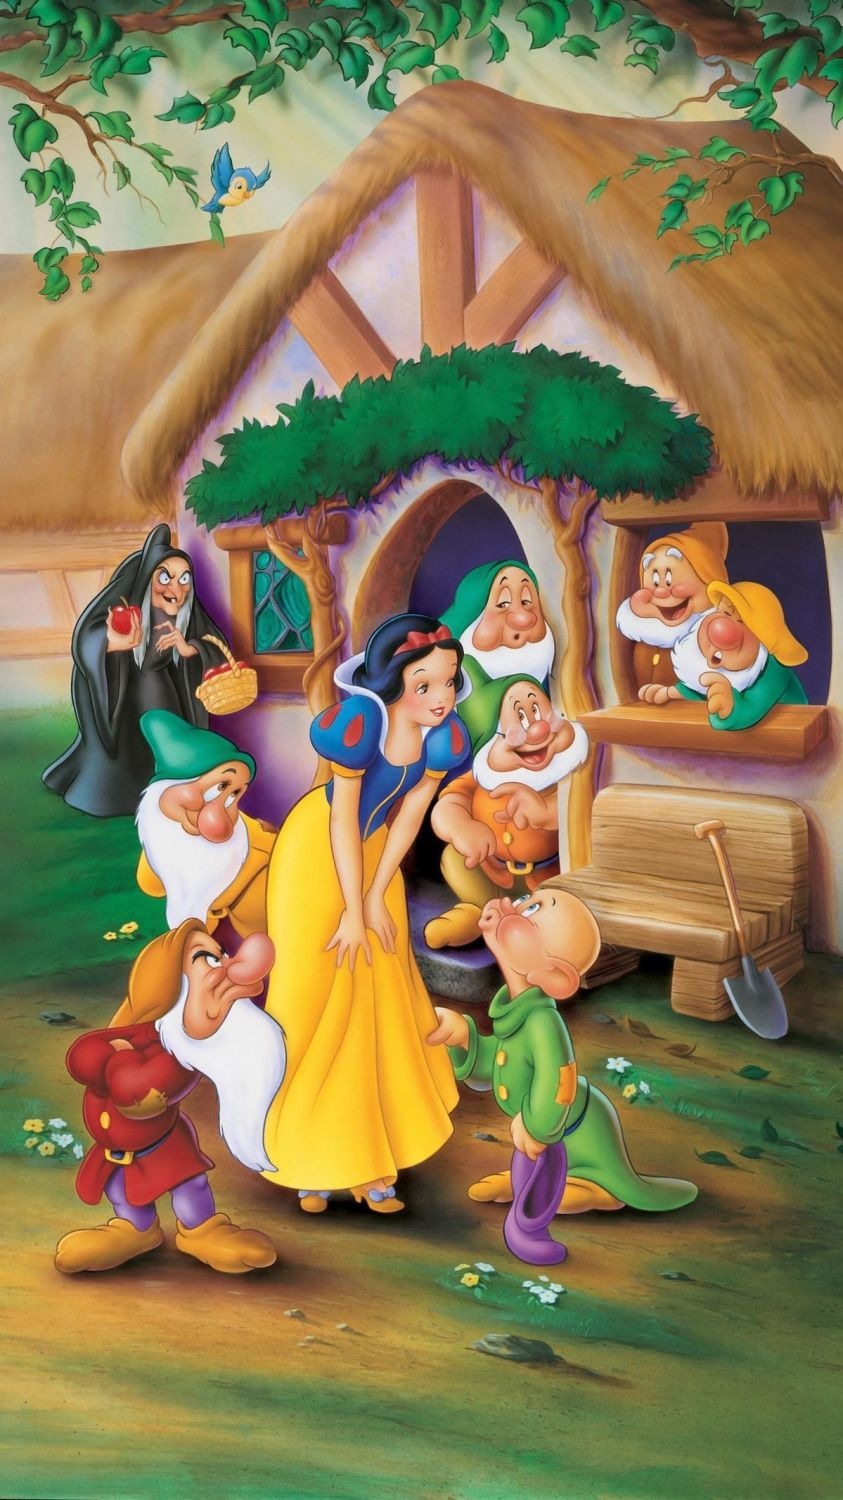 people are now claiming that snow white's true love's kiss was not consensual